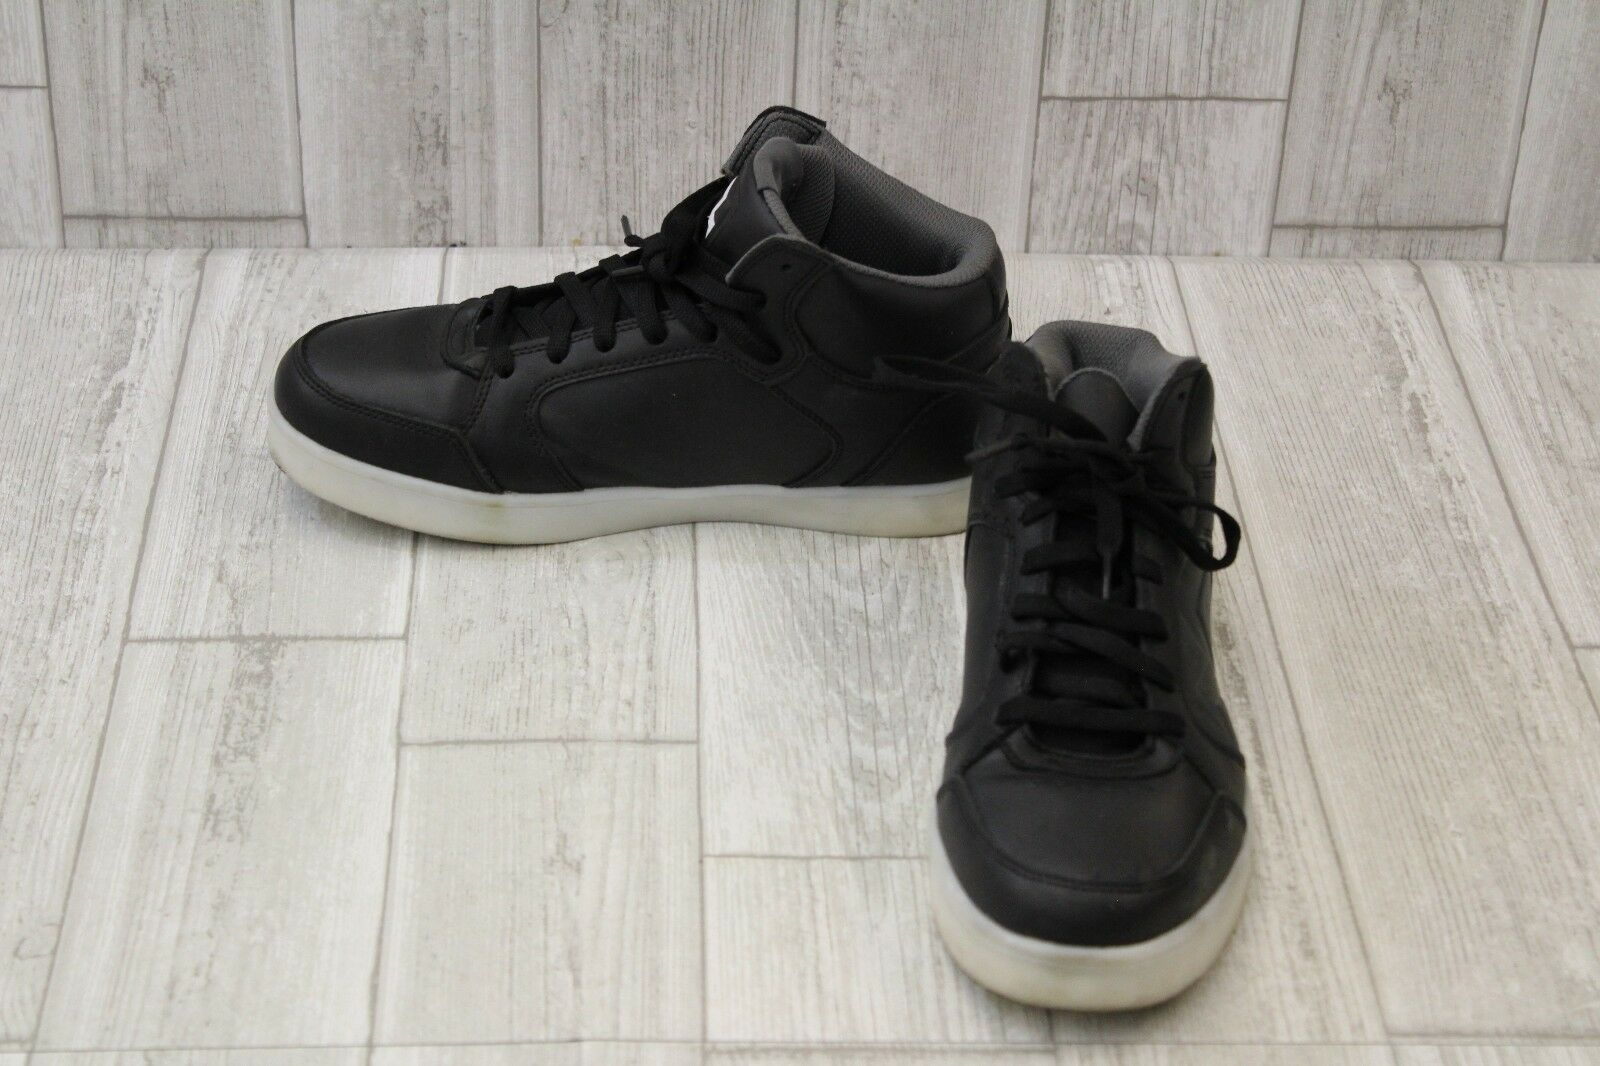 Skechers Energy Lights Parkey Sneakers-Men's size 8 Black Cheap and beautiful fashion